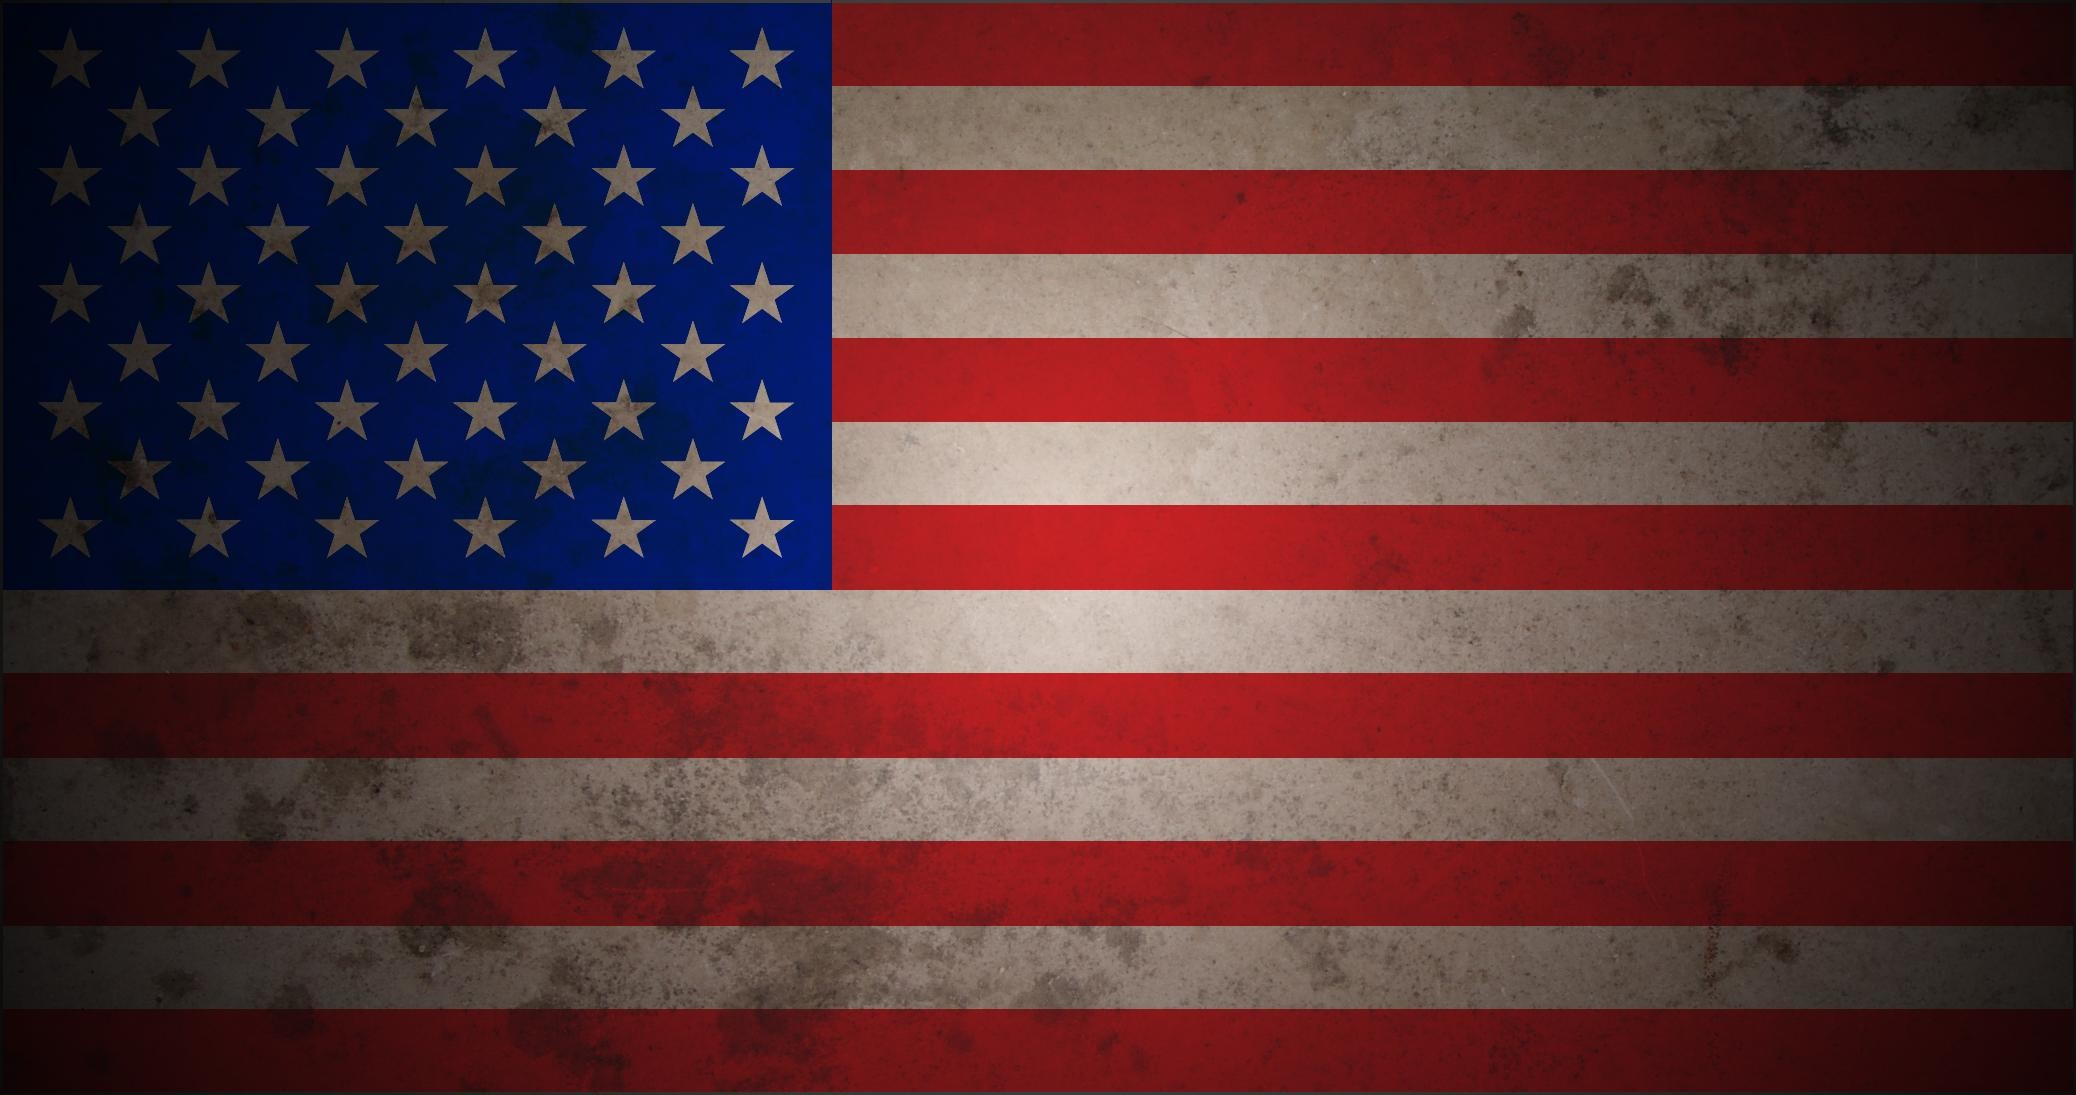 2076x1095 american flag desktop wallpaper - www.